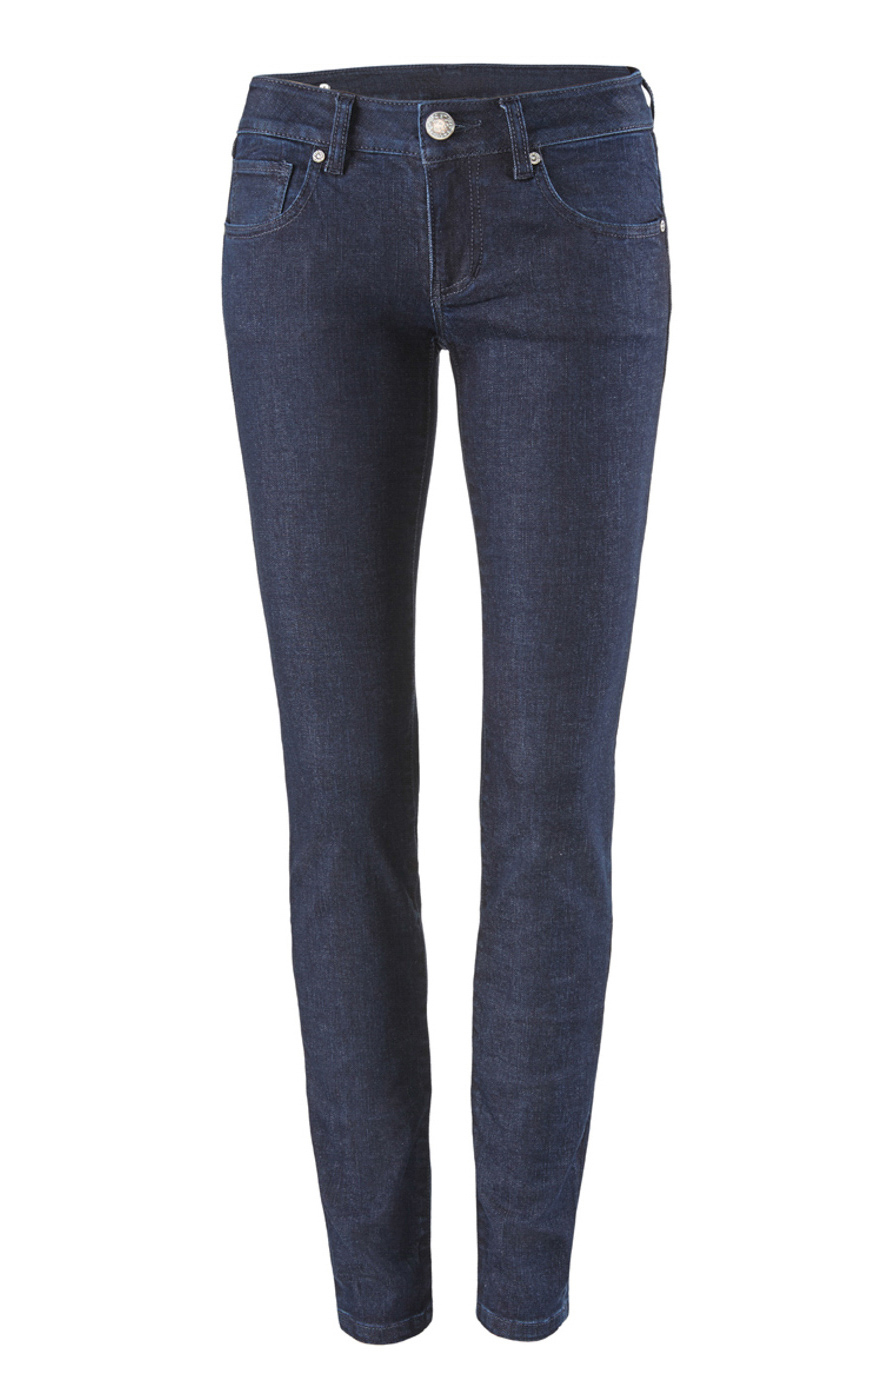 Knight Skinny Jean - Cabi Fall 2015 Collection